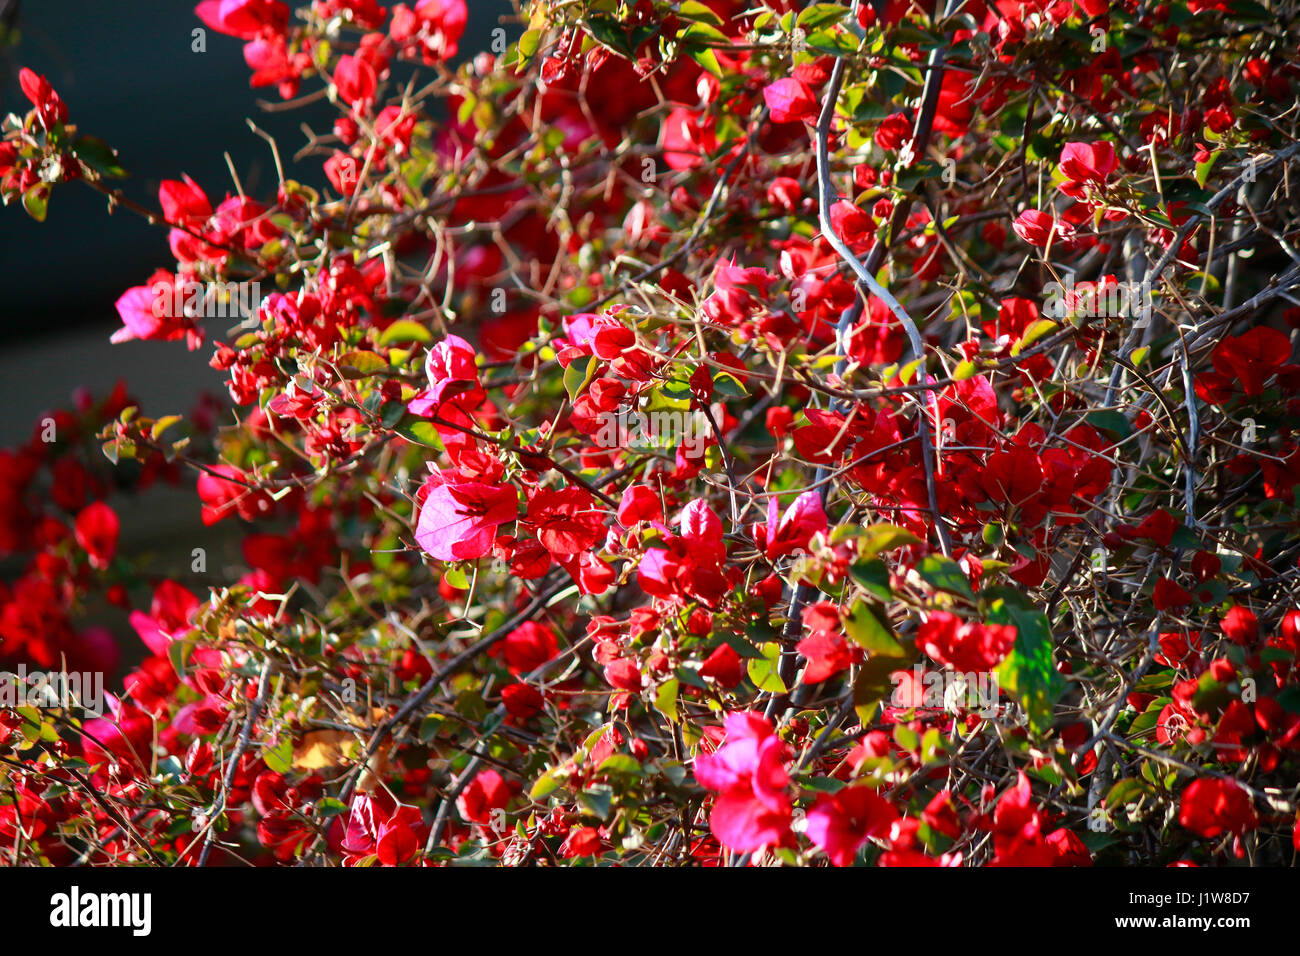 Bougainvillea, Bougainville, Bougainvillee, Bougainvillie, Athen, Griechenland. Stock Photo